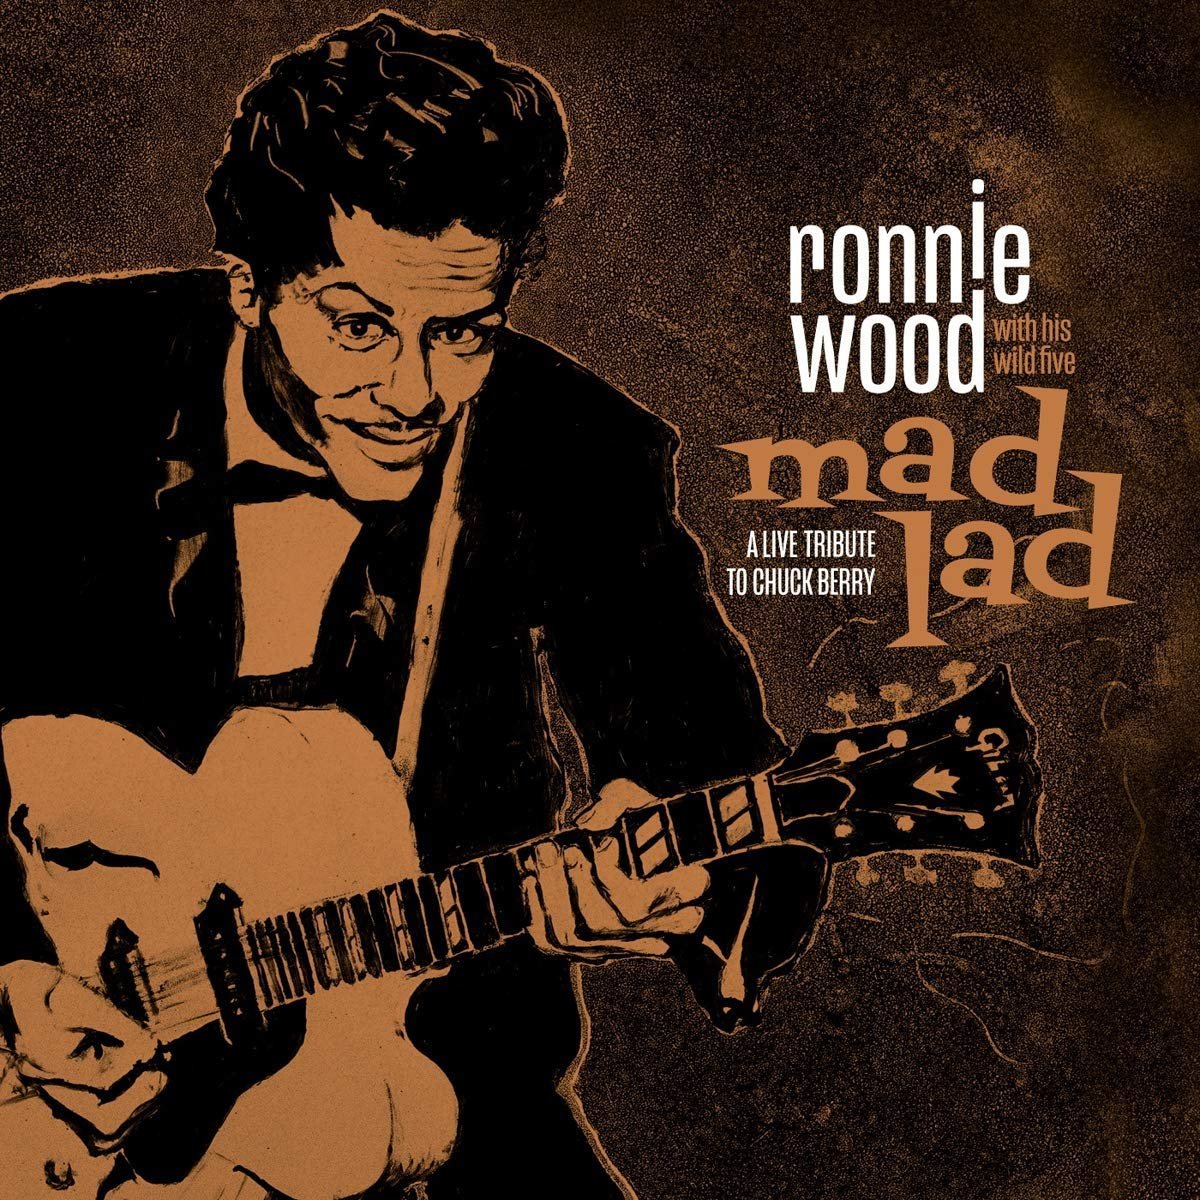 Ronnie Wood with His Wild Five - Mad Lad: A Live Tribute to Chuck Berry